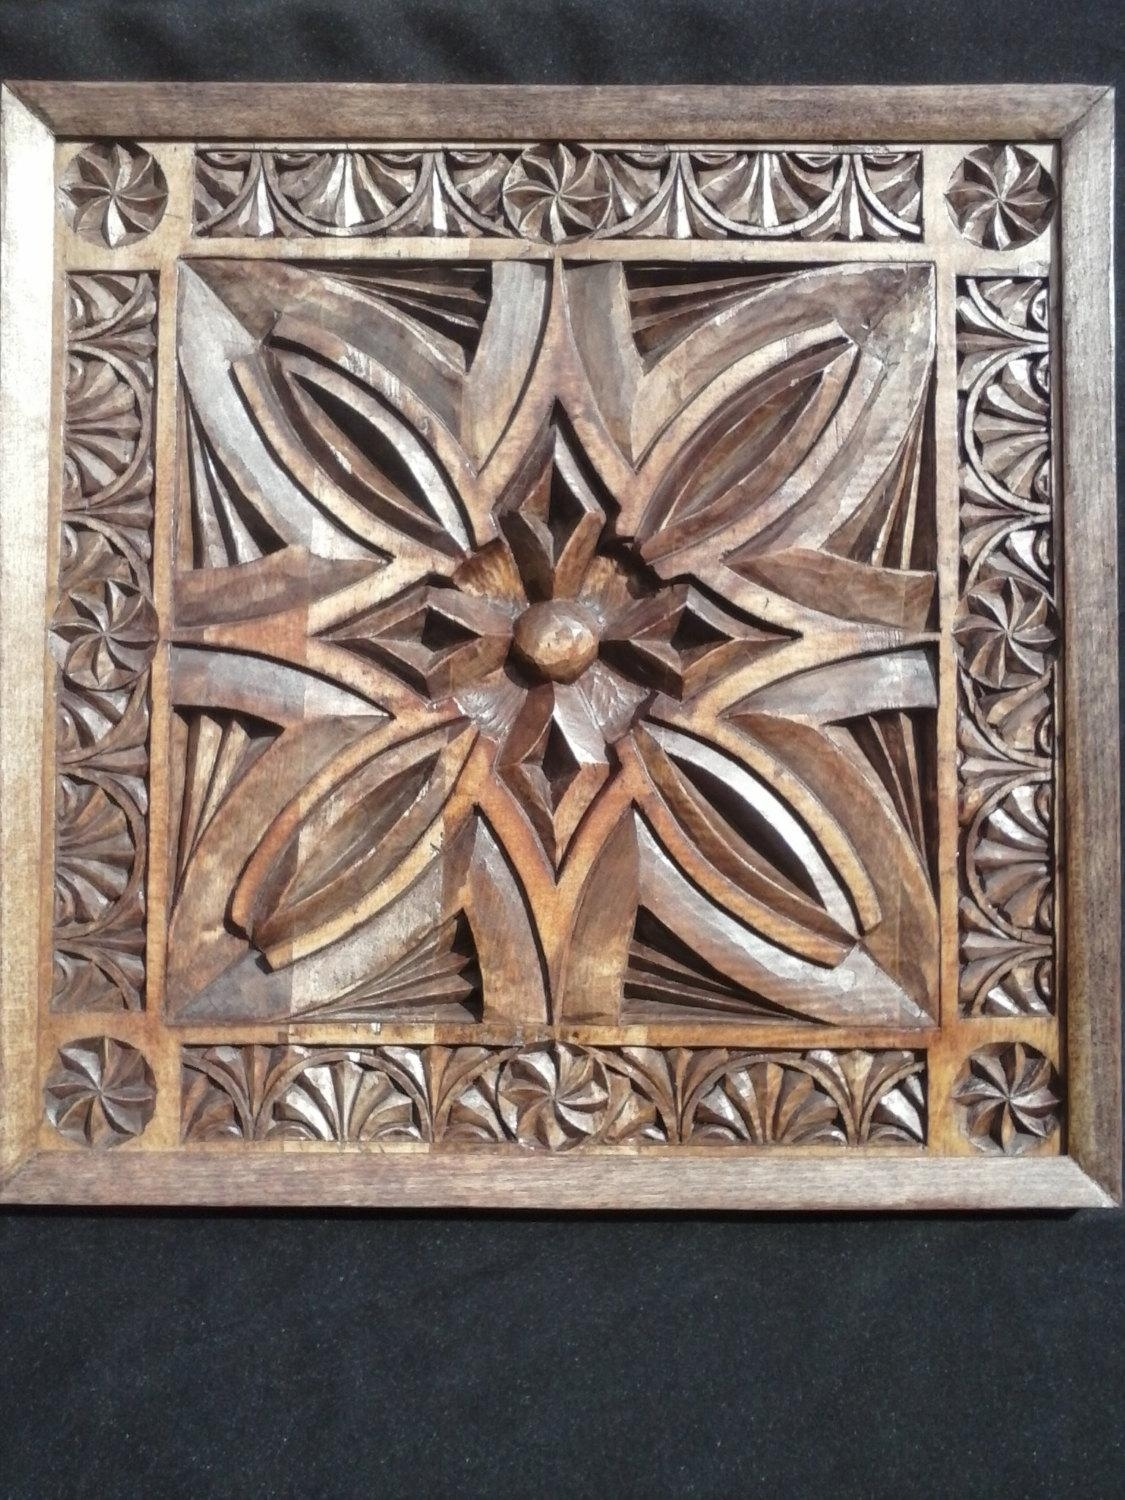 Wood Carving Wall Art Panel Chip Carvedhand In Tulip Wood Regarding Wood Carved Wall Art Panels (Image 18 of 20)